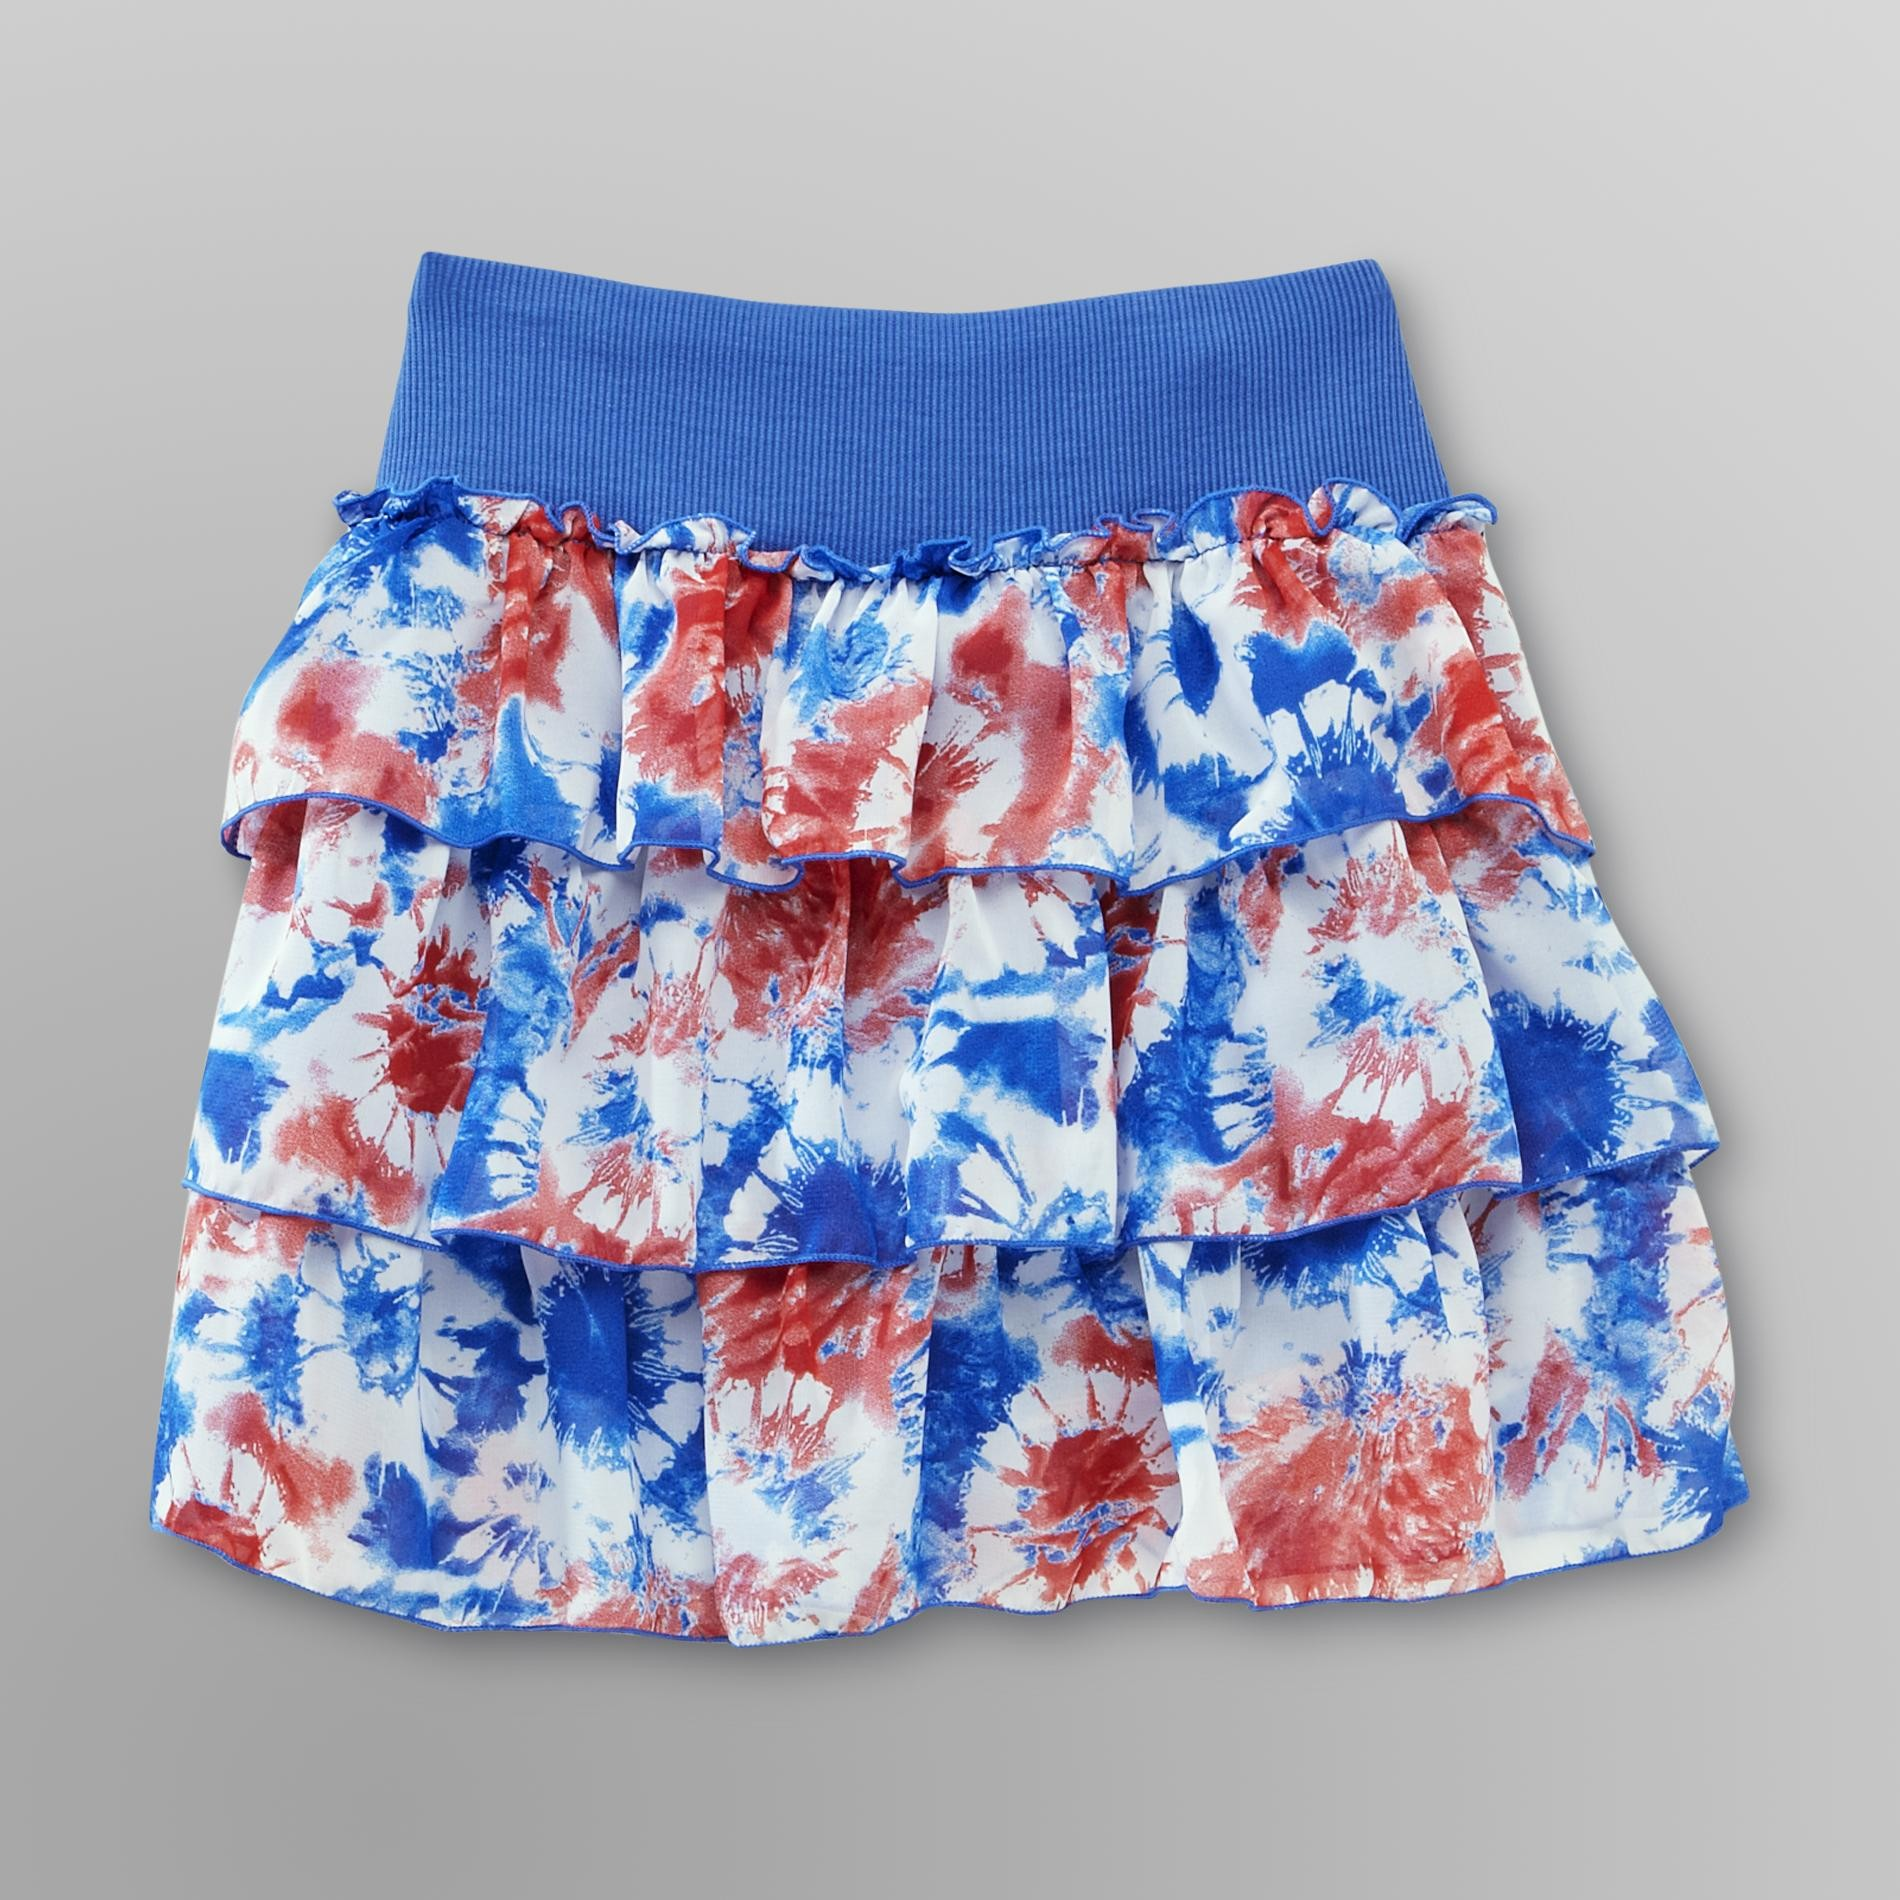 Route 66  Girl's Scooter Skirt - Tie-Dye